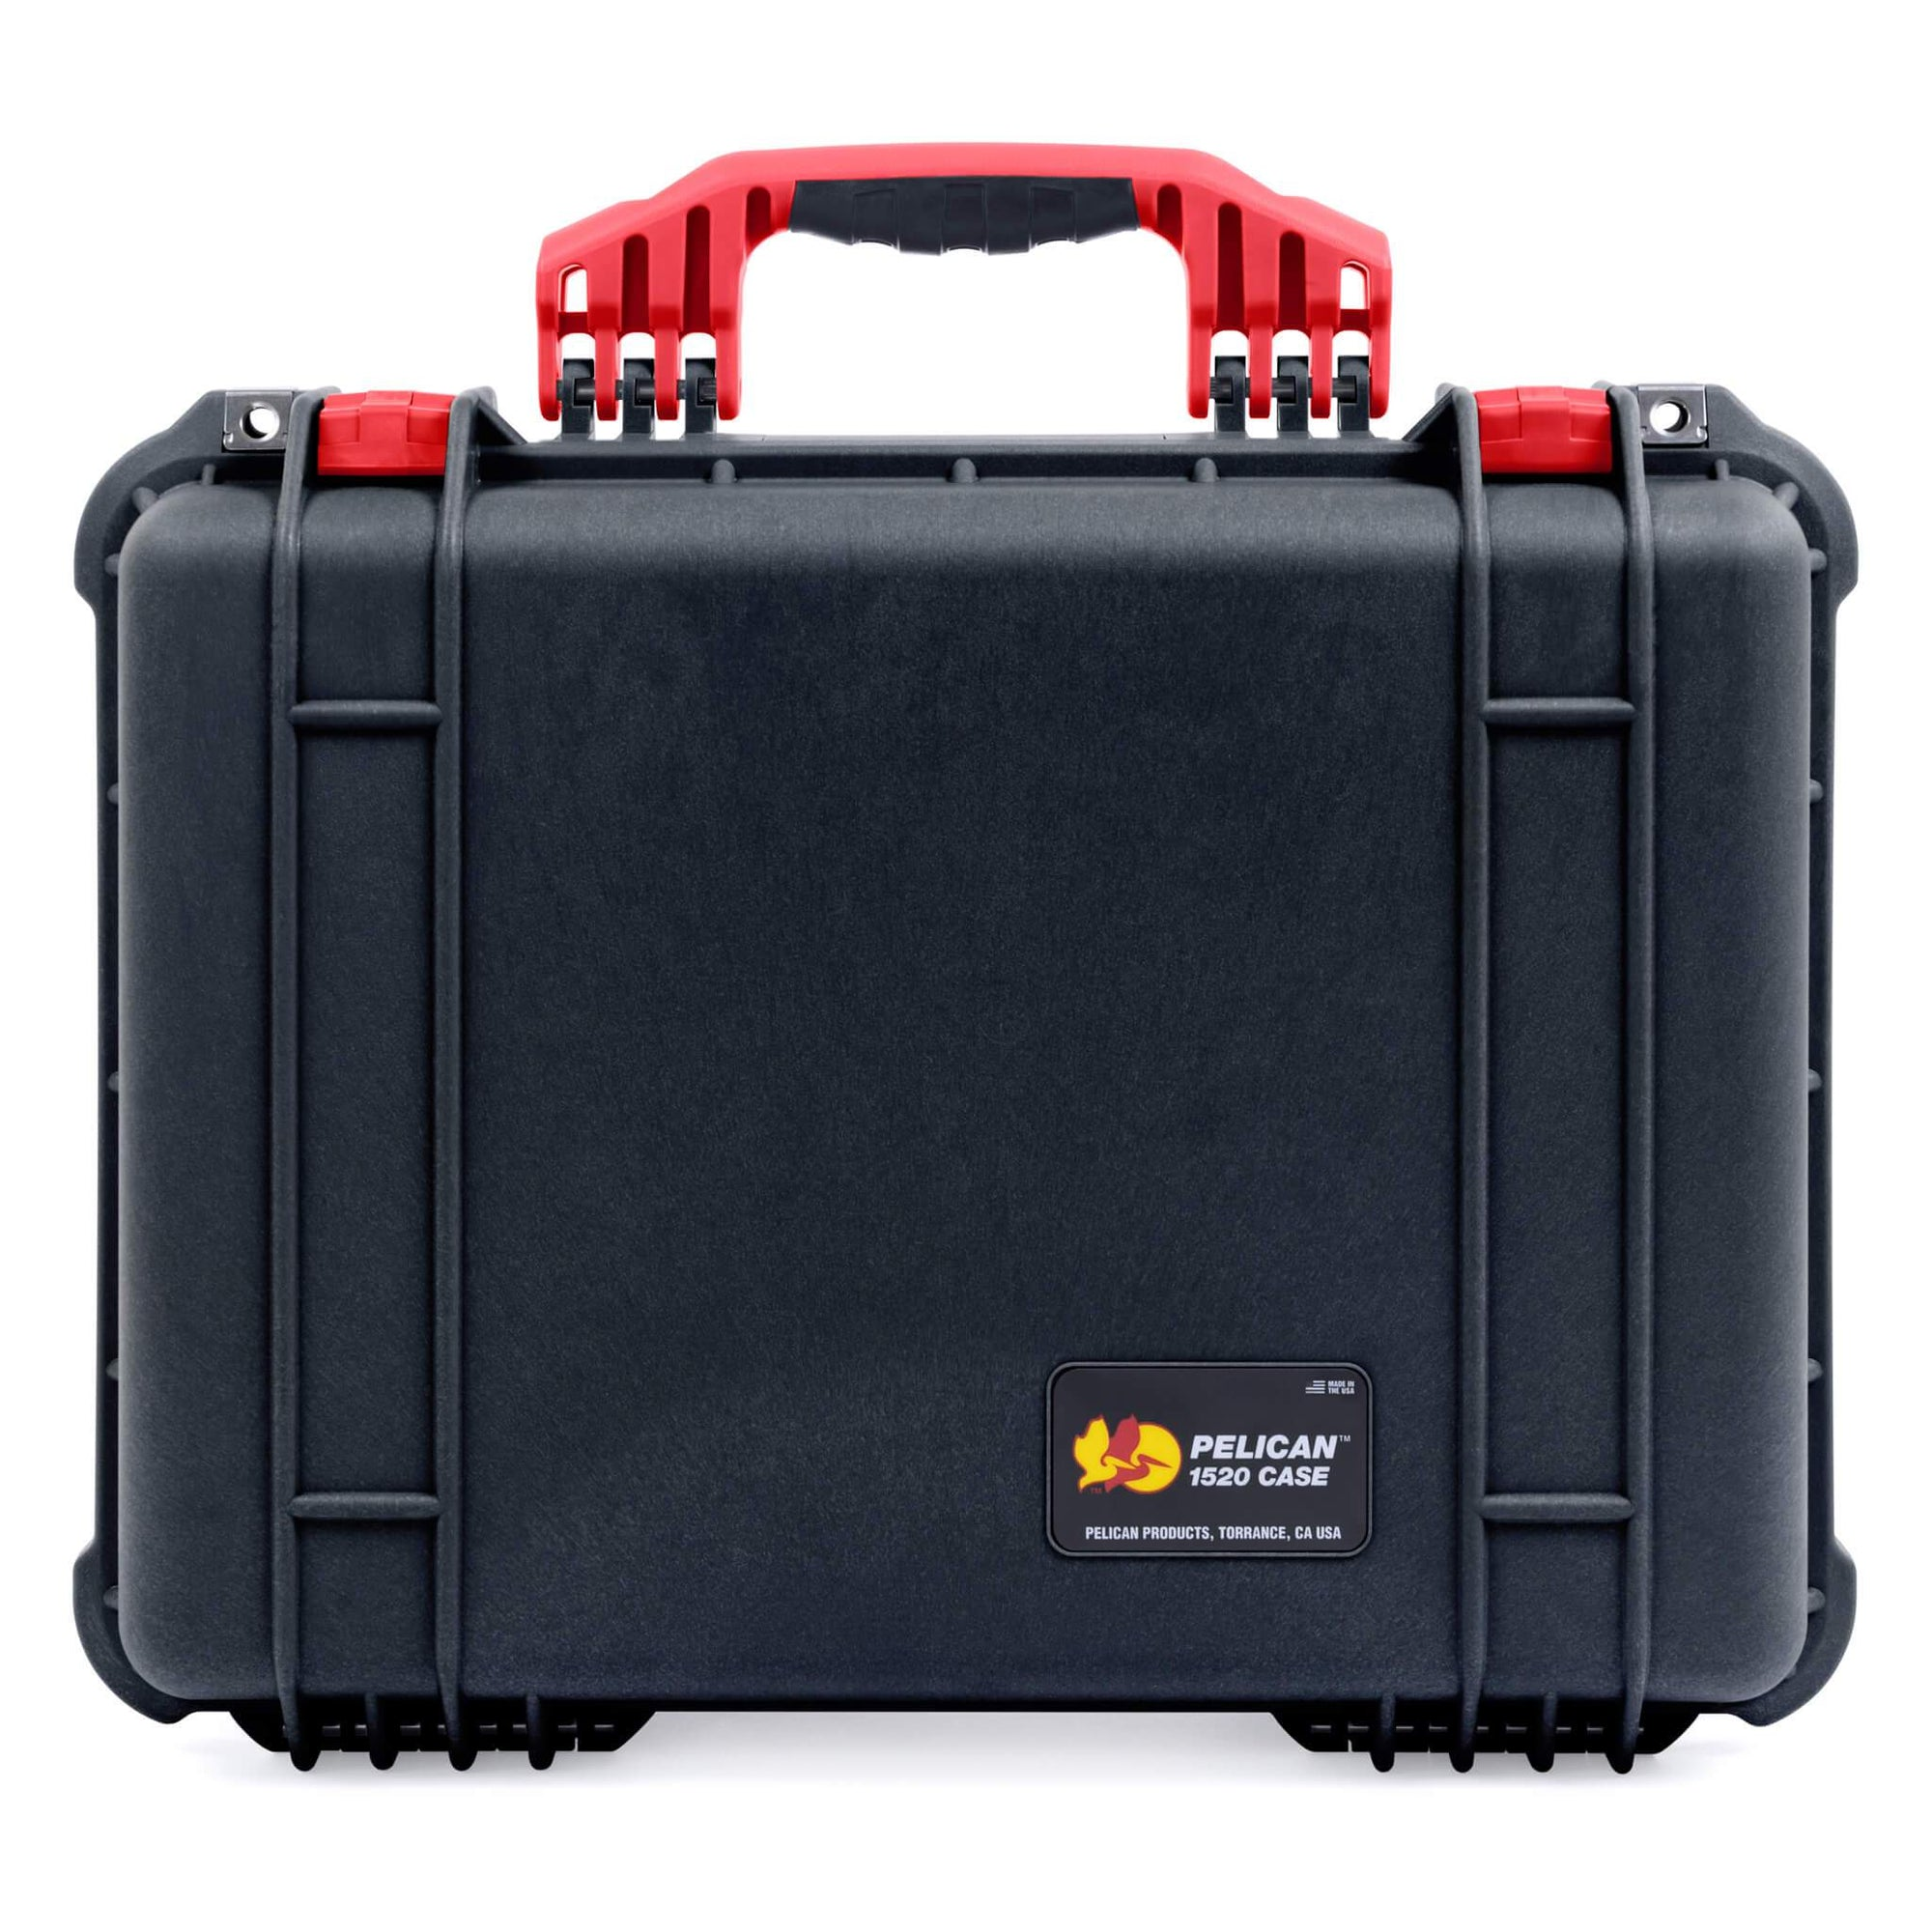 Pelican 1520 Case, Black with Red Handle & Latches